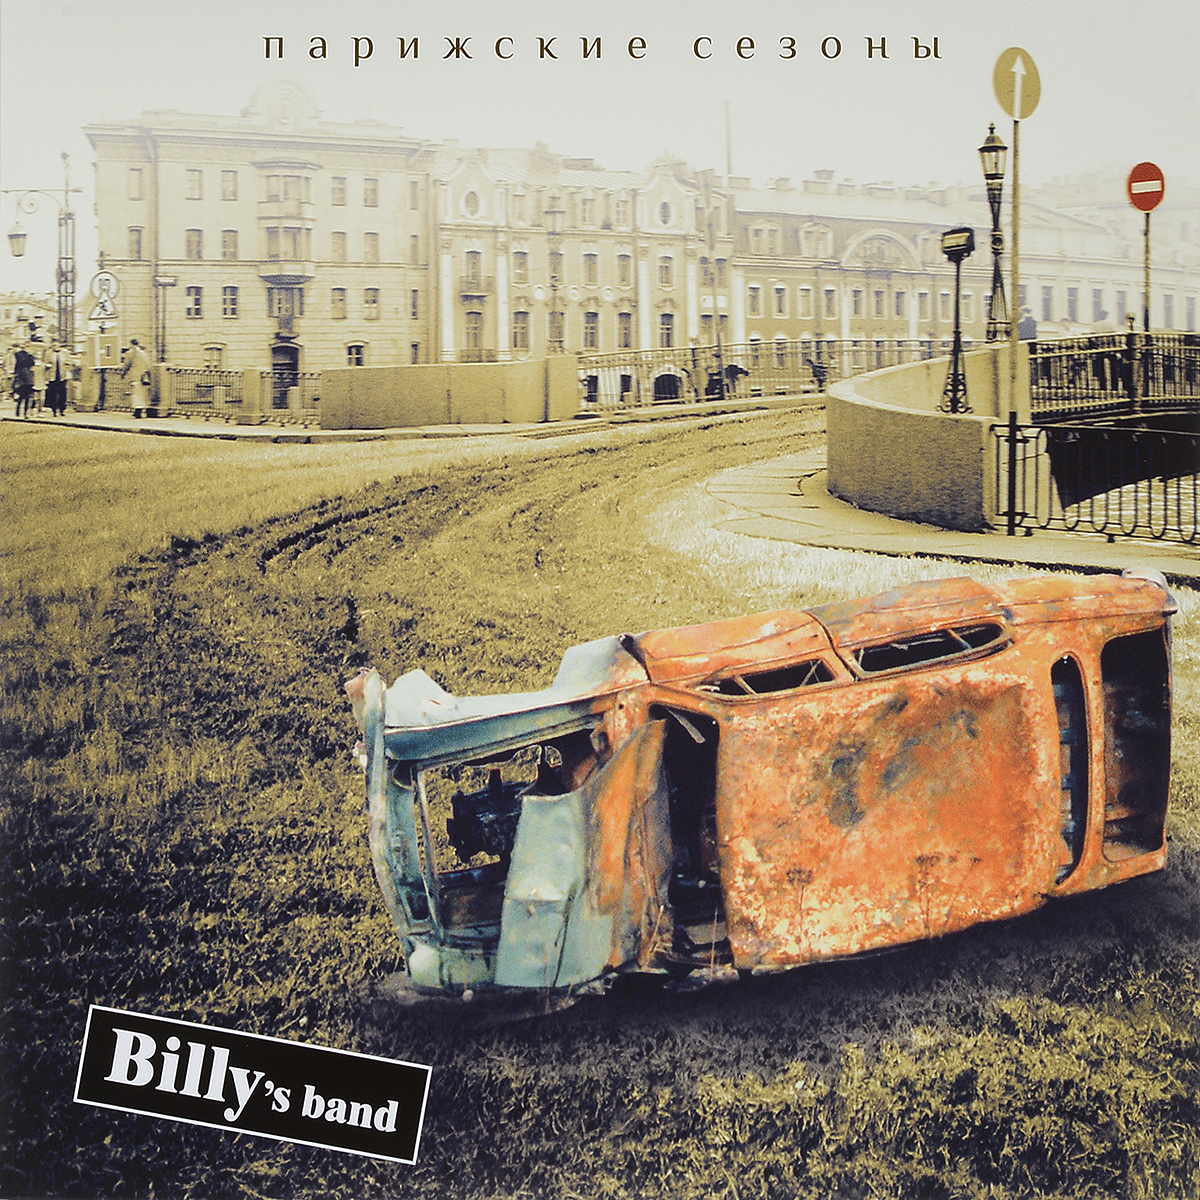 Billy's Band Billy'S Band. Парижские Сезоны (LP) billy's band парижские сезоны lp